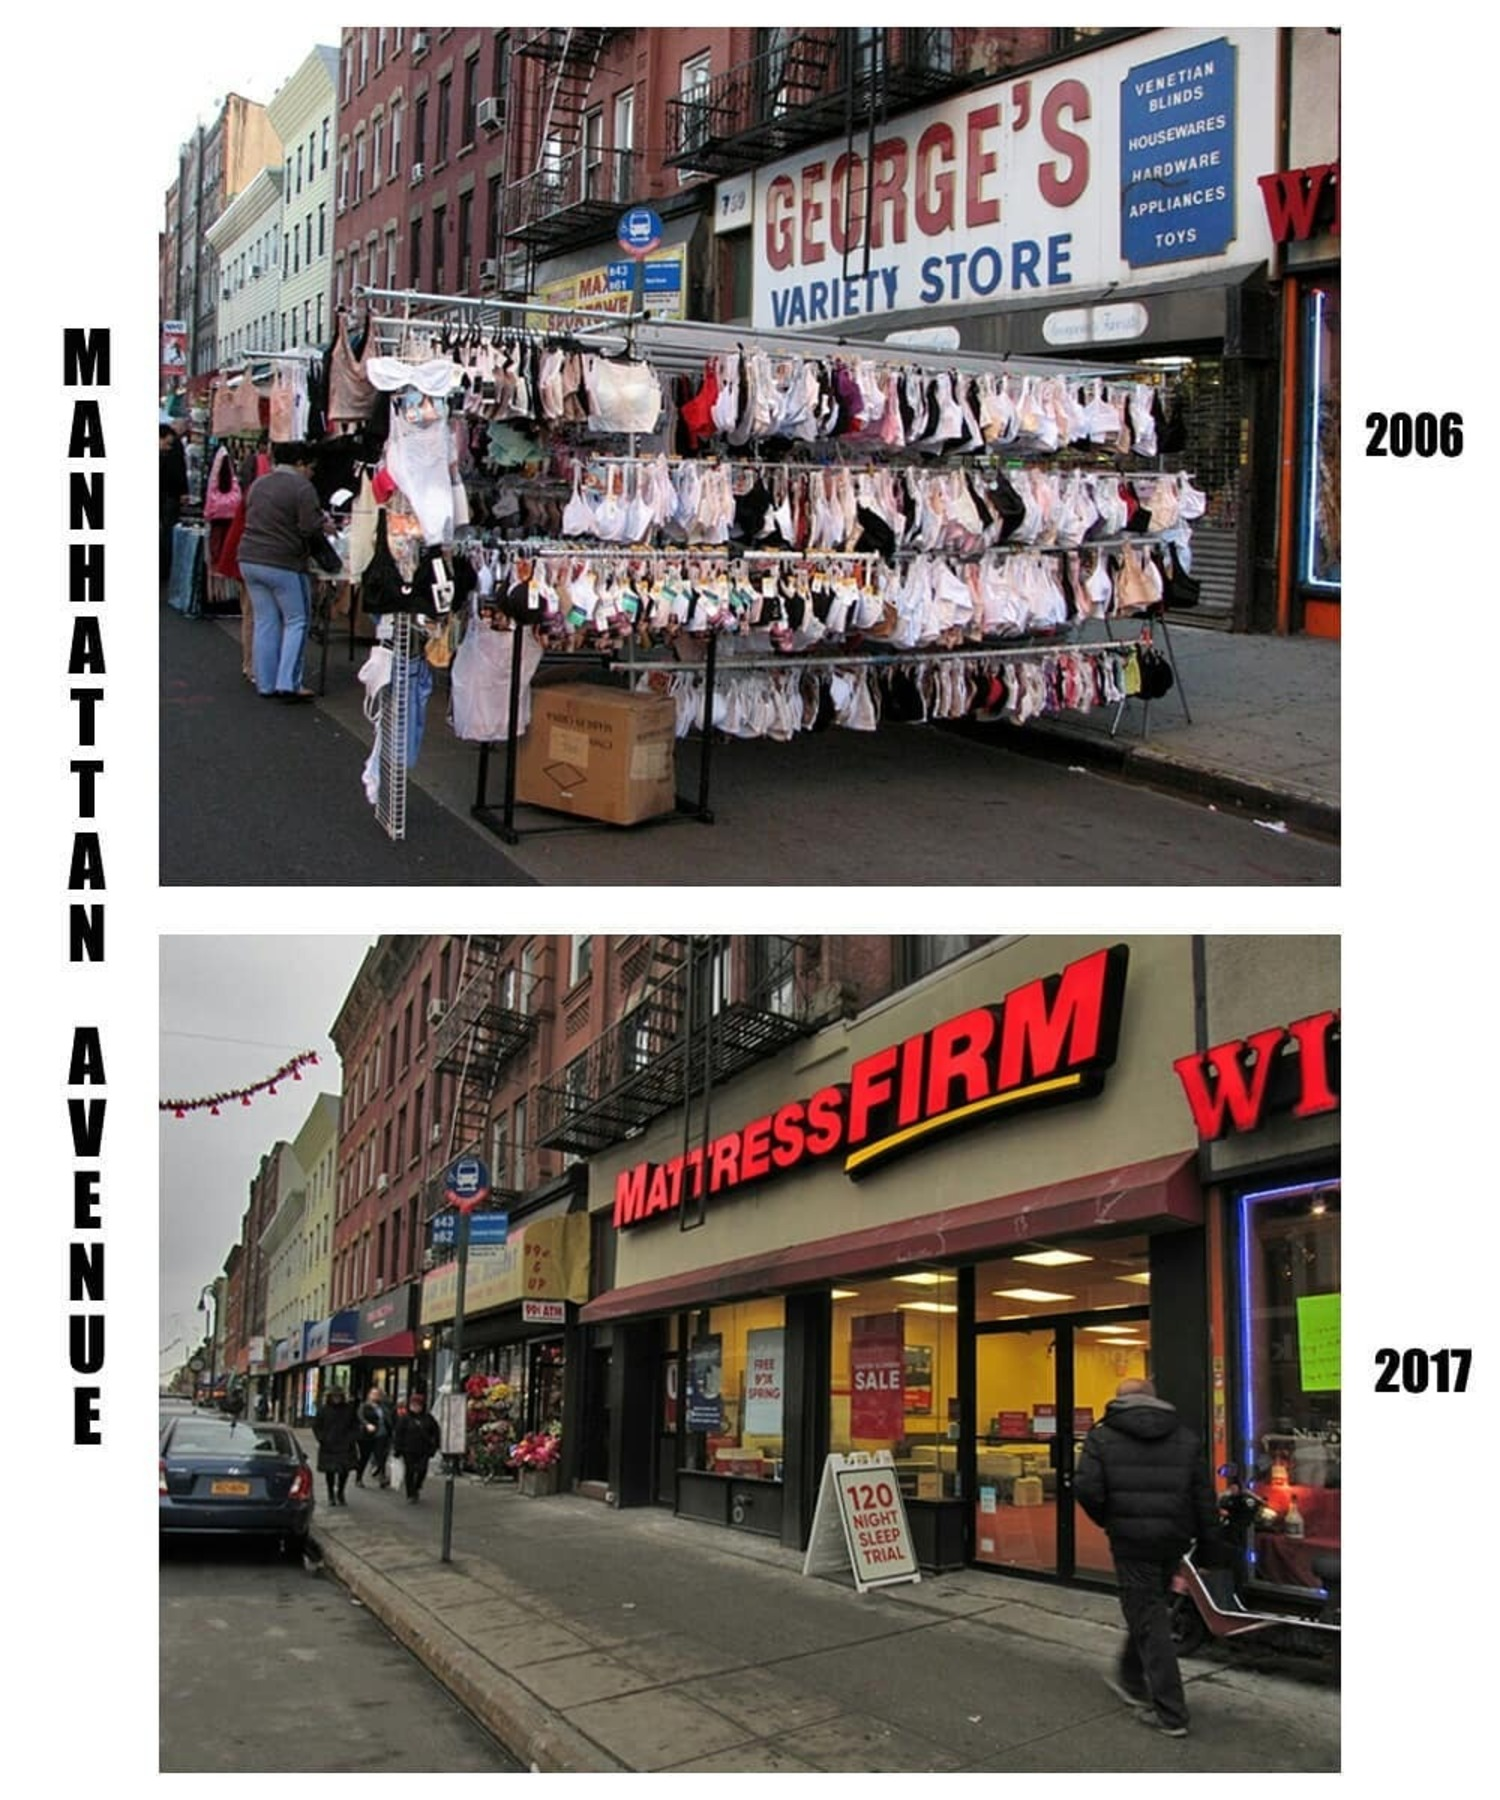 George's Variety Storefront (and some bloomers!) / Mattress Firm.  George's Variety Store, a fixture on Manhattan Avenue for decades, had everything!  #greenpoint #brooklyn #oldschool #nyc #signage #retro #vintage #signs #storefront #oldstore #oldsignage #beforeandafter #thenandnow #street #shopping #mattress #manhattanave #varietystore #neighborhood #disappearingnewyork #oldnewyork #11222 #718 #potd #gone #bra #underwear #streetfair #greenpointhistory